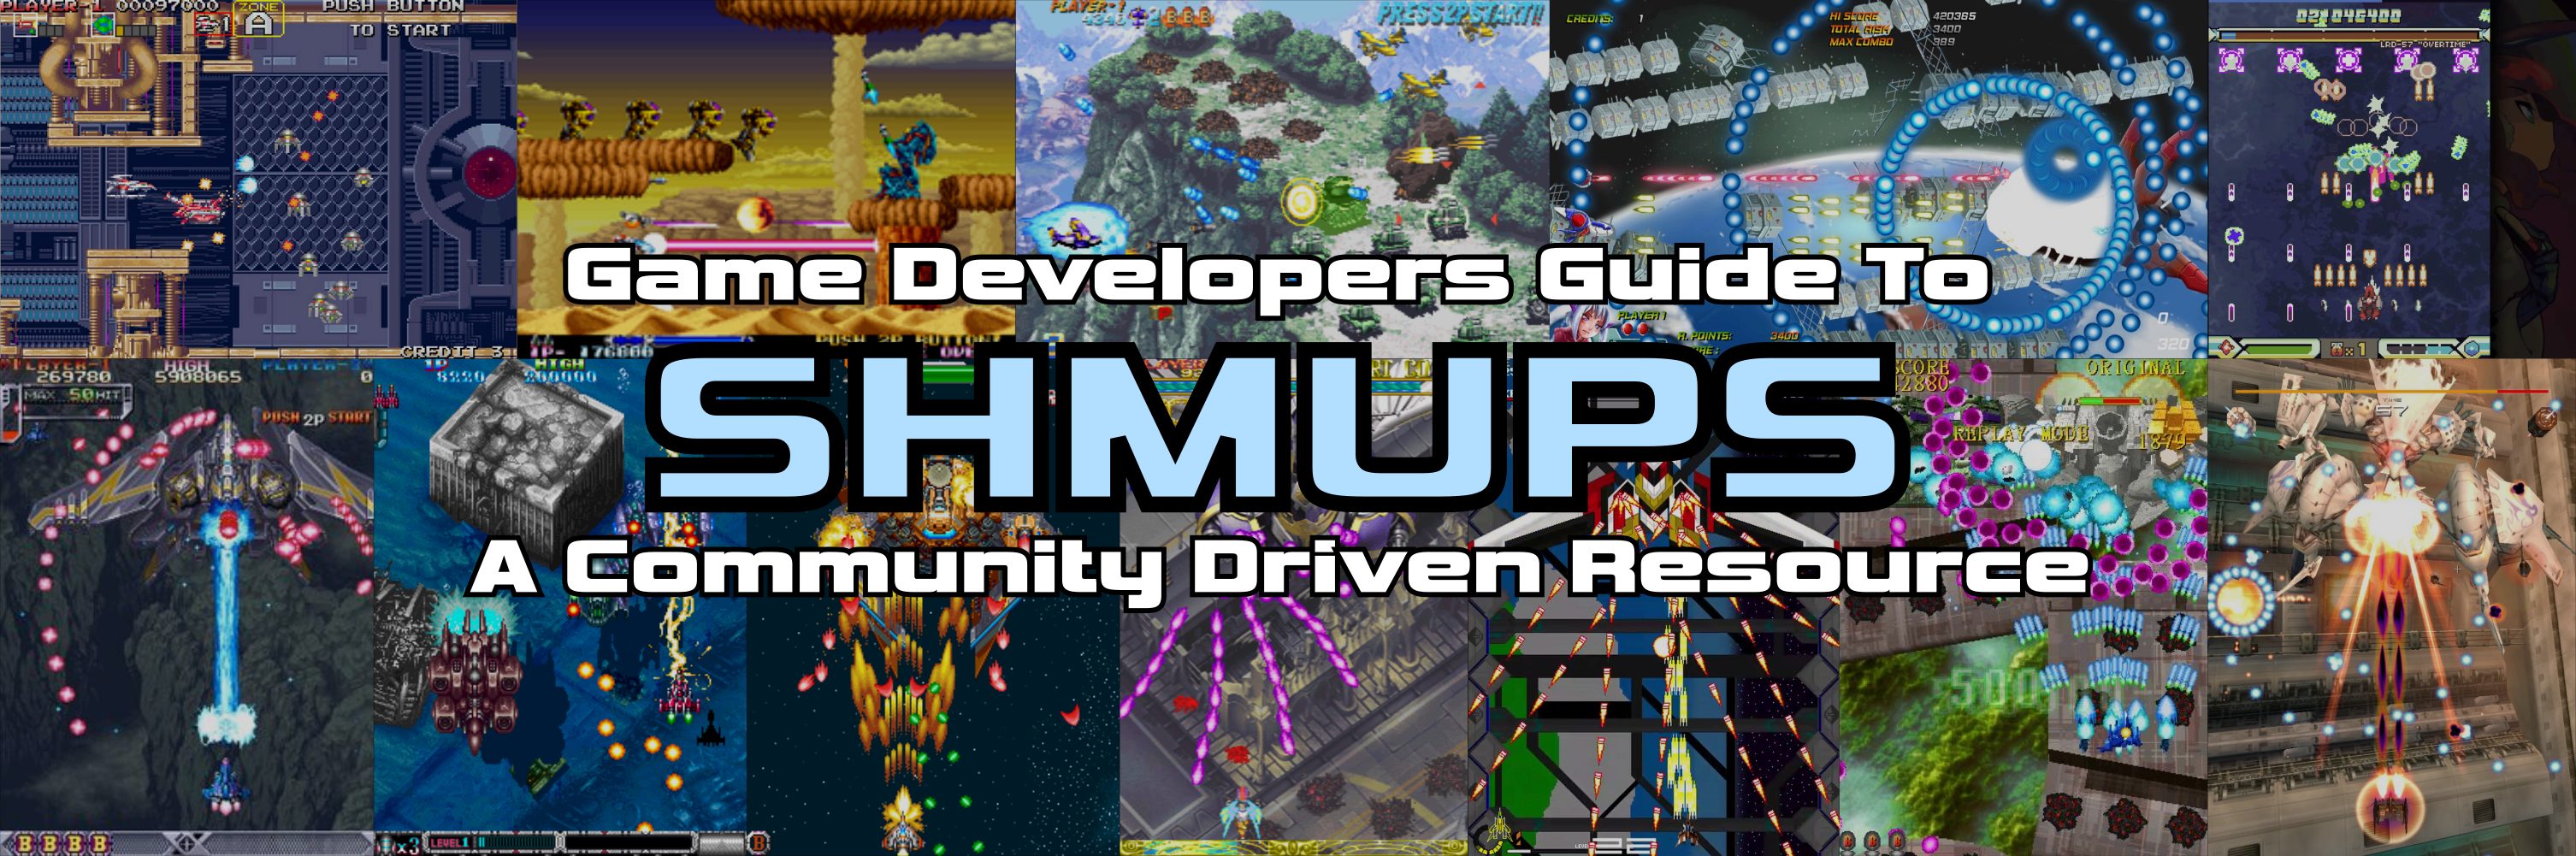 Game Developers Guide to SHMUPS: A Community Driven Resource